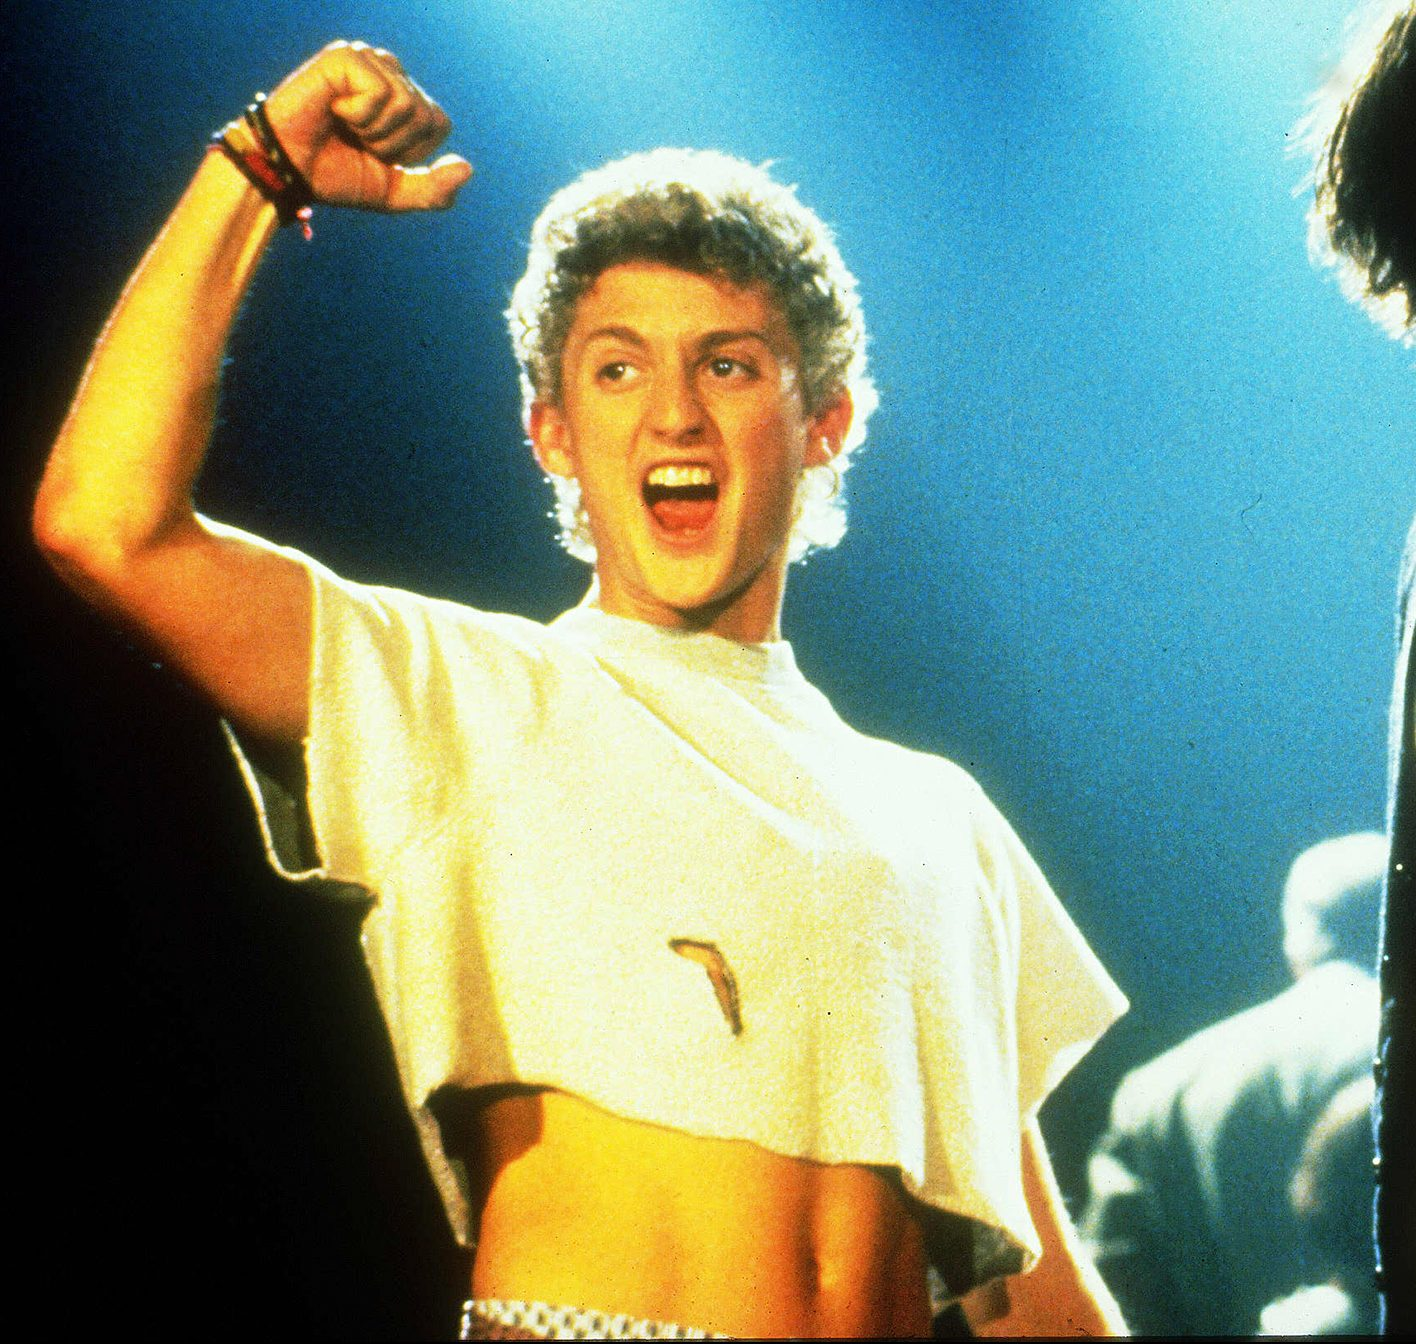 bill and teds e1616513981192 25 Totally Non-Heinous Facts About Bill & Ted's Excellent Adventure!